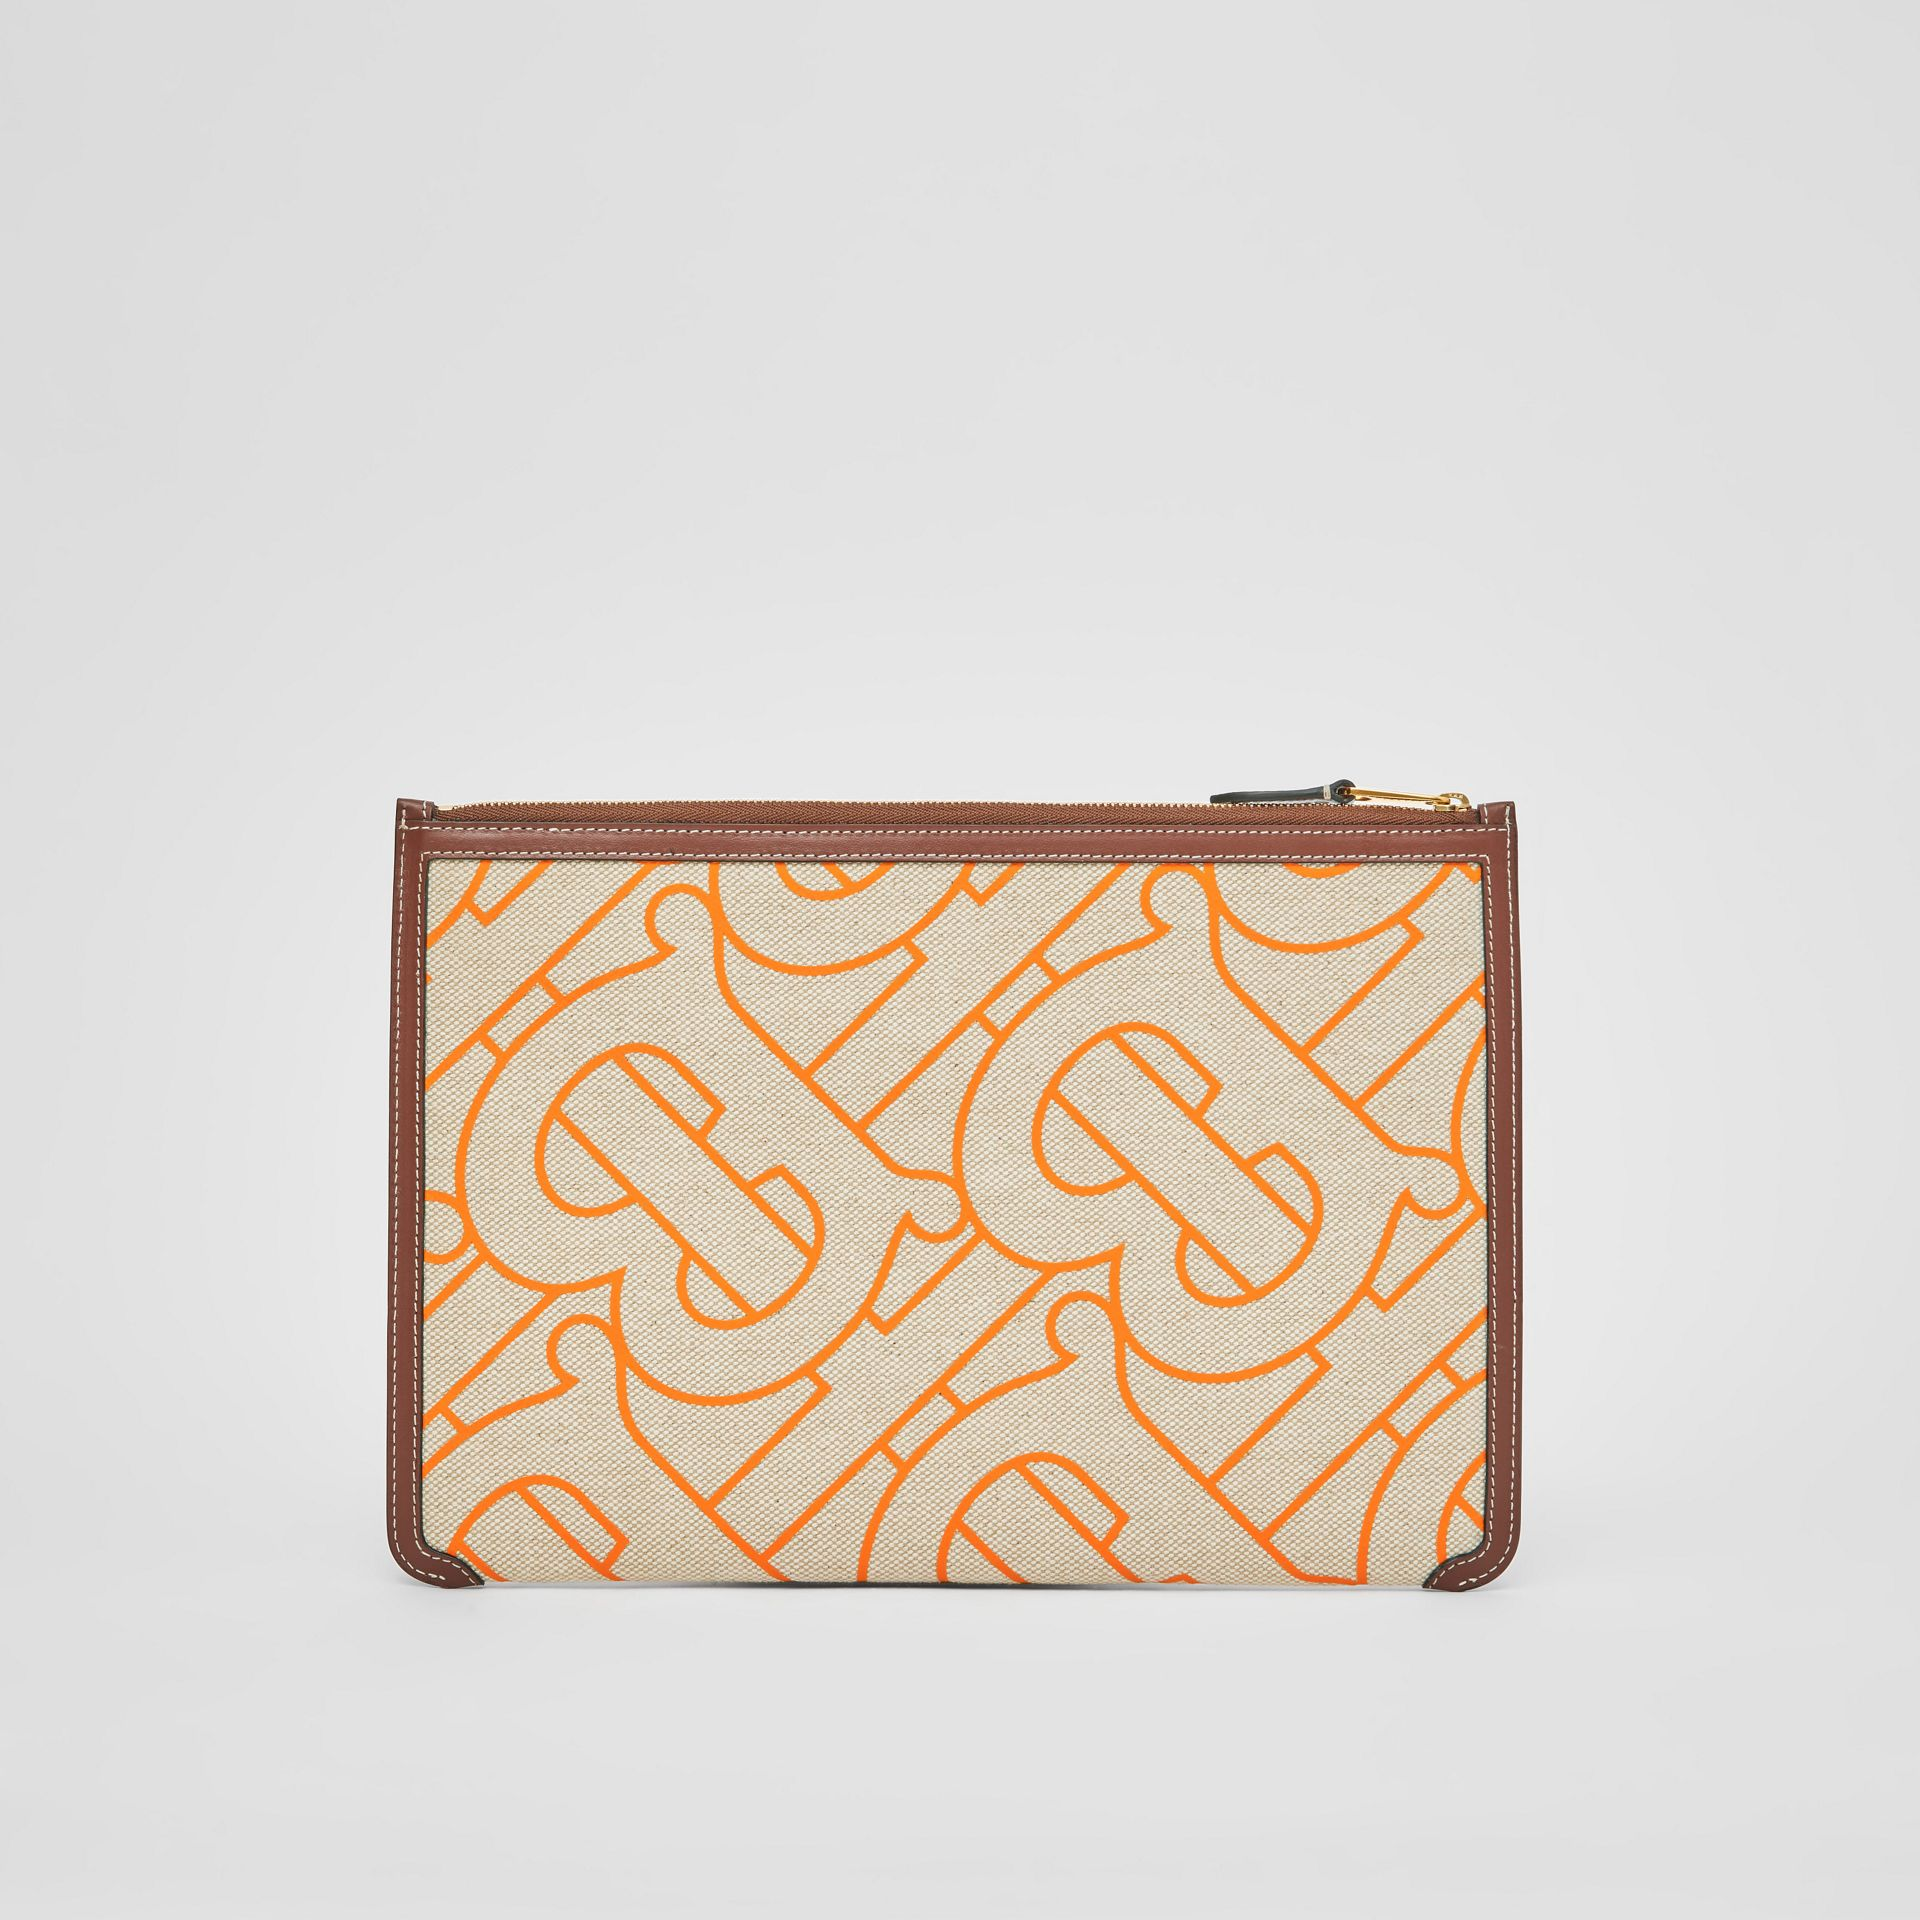 Monogram Motif Canvas and Leather Pouch in Natural/orange - Women | Burberry United Kingdom - gallery image 6